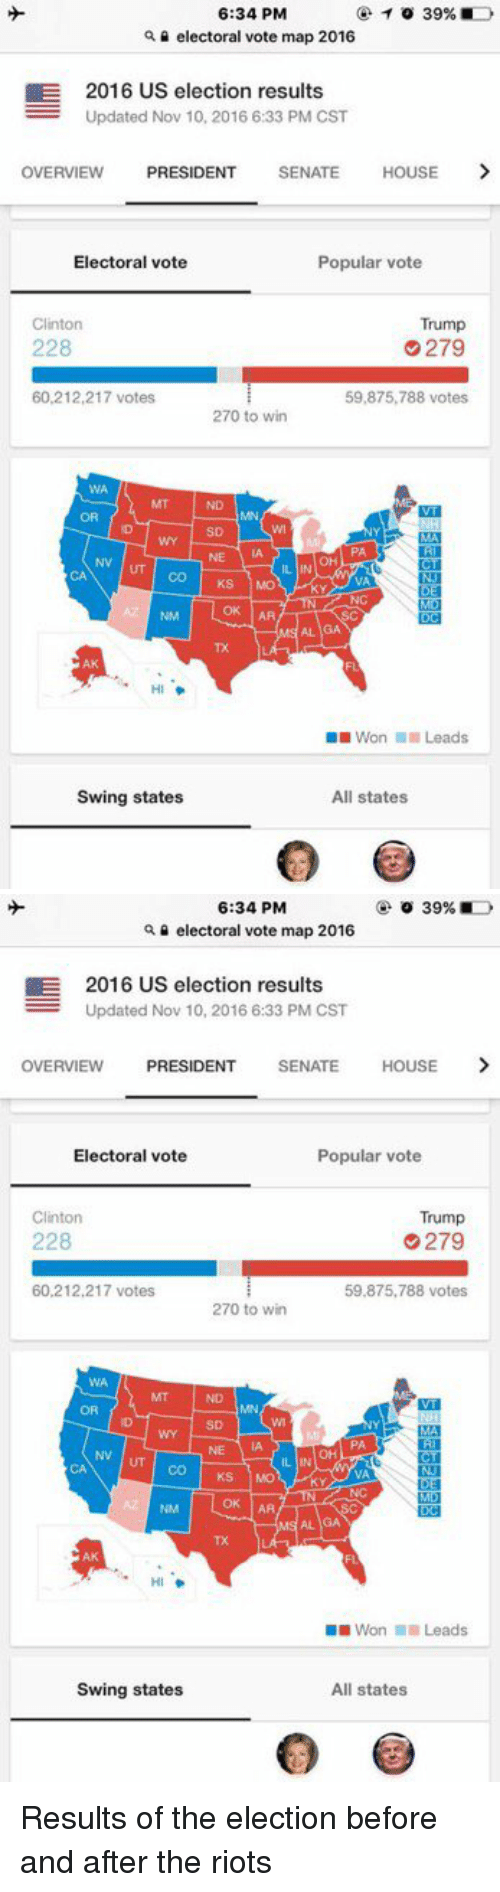 Clinton Trump: 6:34 PM  39%,  a electoral vote map 2016  E 2016 US election results  Updated Nov 10, 2016 6:33 PM CST  OVERVIEW  PRESIDENT  SENATE  HOUSE  Popular vote  Electoral vote  Clinton  Trump  228  279  60,212,217 votes  59,875,788 votes  270 to win  Co Ks Mo  OK AA  Won Leads  Swing states  All states   6:34 PM  o 39%  Q electoral vote map 2016  E 2016 US election results  Updated Nov 10, 2016 6:33 PM CST  OVERVIEW  PRESIDENT  SENATE  HOUSE  Electoral vote  Popular vote  Clinton  Trump  228  G279  60,212,217 votes  59,875,788 votes  270 to win  NN UT co KS MO  LEI  Won Leads  Swing states  All states Results of the election before and after the riots